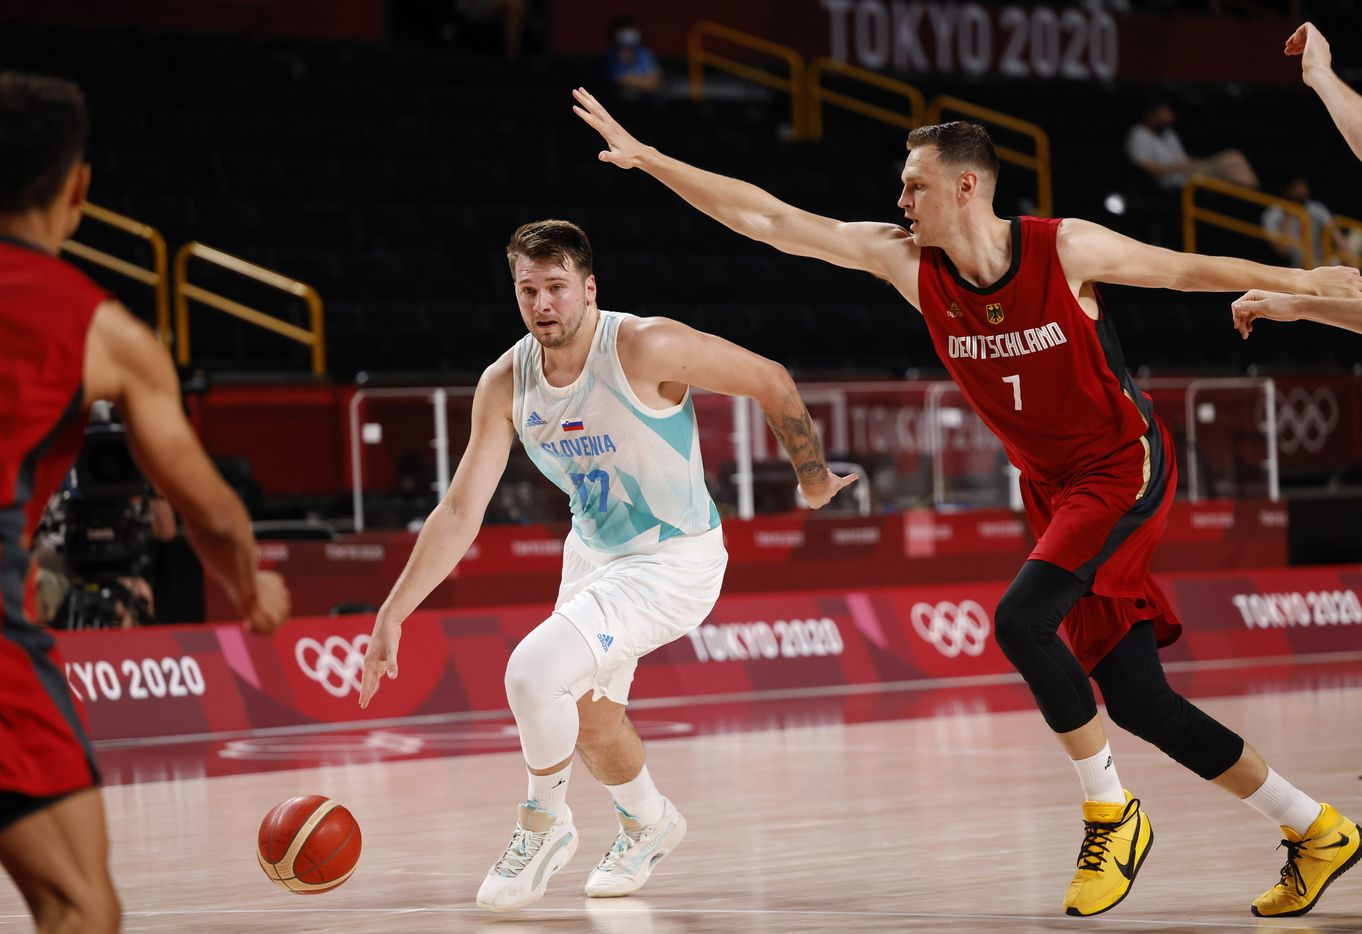 Slovenia's Luka Doncic (77) drives on Germany's Johannes Voigtmann (7) during the first half of play of a quarter final basketball game at the postponed 2020 Tokyo Olympics at Saitama Super Arena, on Tuesday, August 3, 2021, in Saitama, Japan. (Vernon Bryant/The Dallas Morning News)